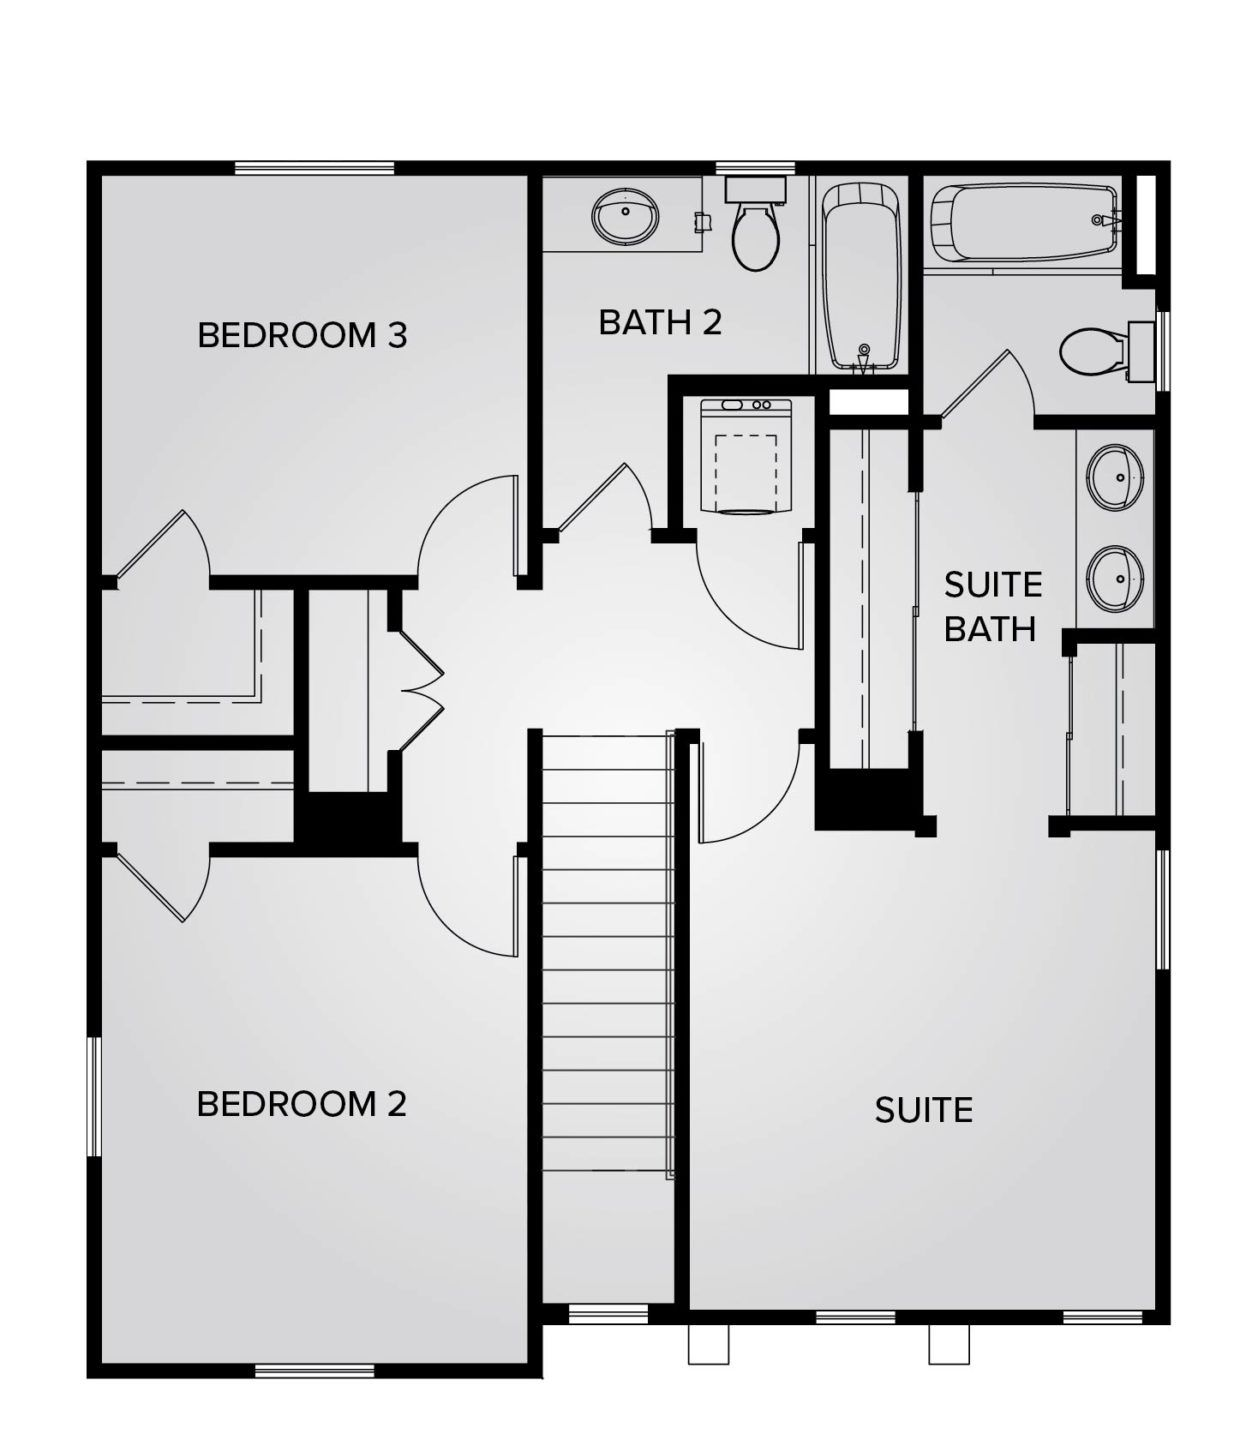 Photo of Residence 1 in Sacramento, CA 95823